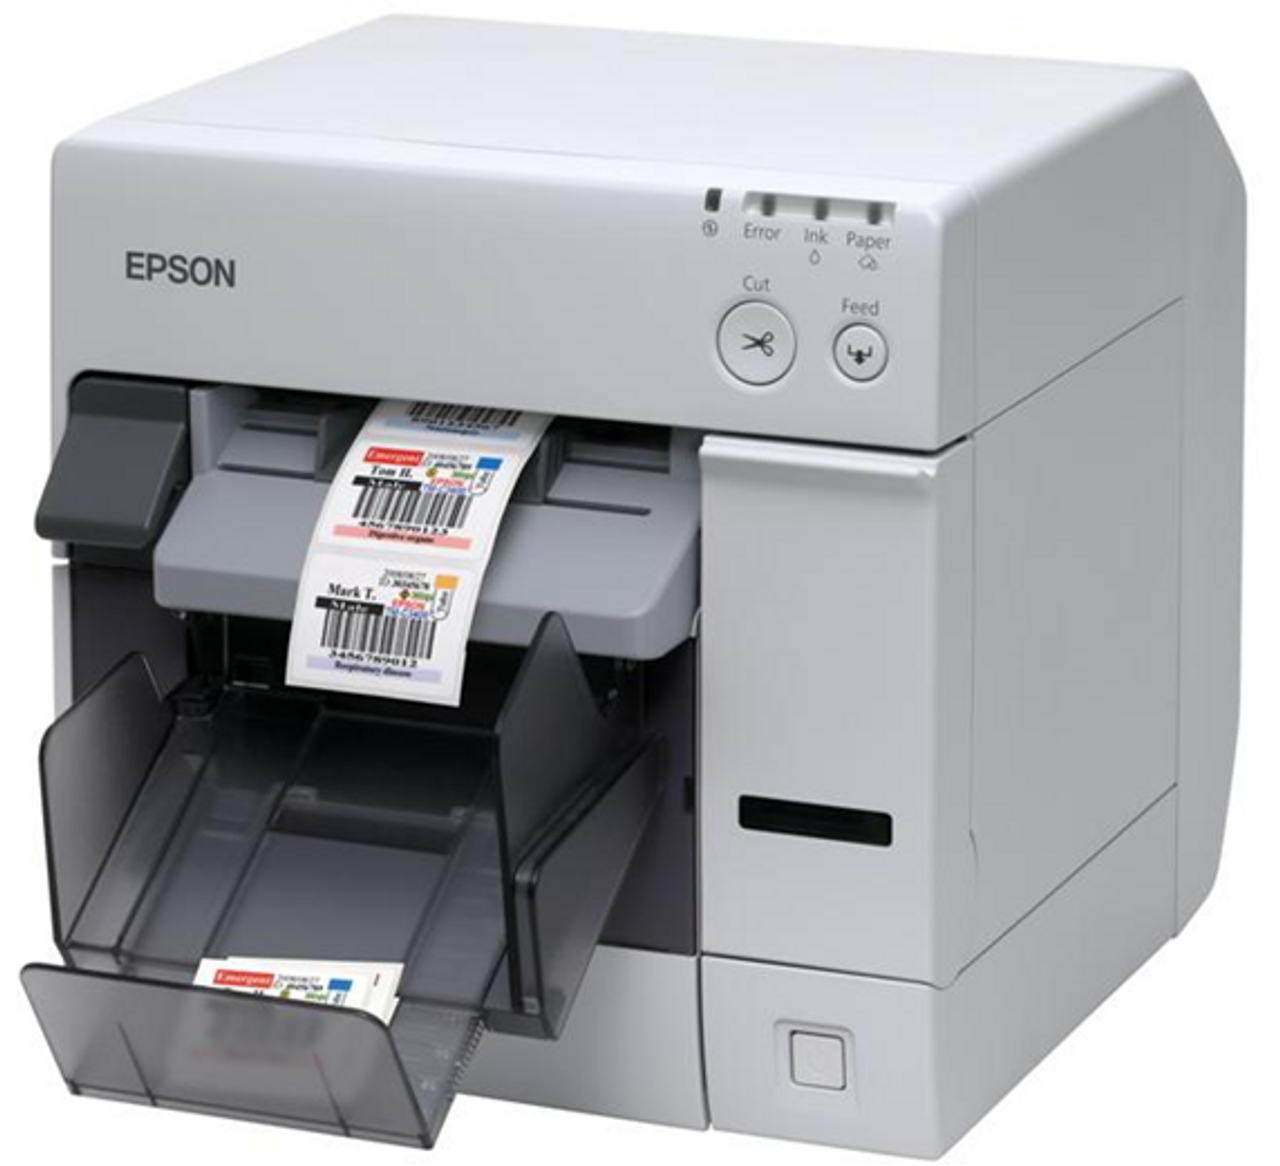 EPSON TM-C3400 TREIBER WINDOWS 10